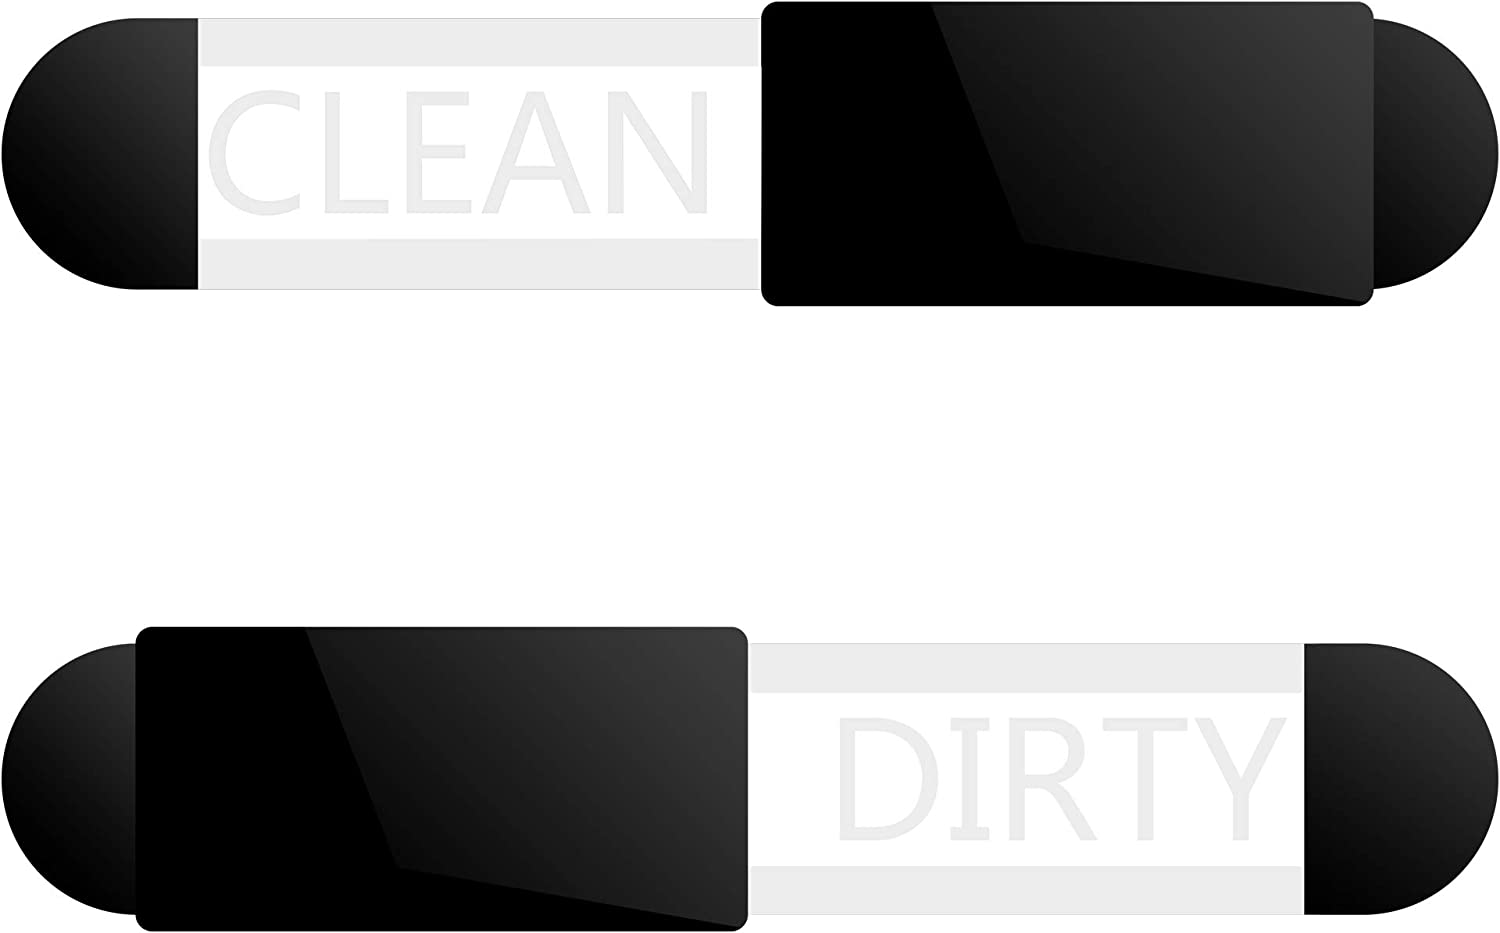 Beautyflier Clean Dirty Dishwasher Acrylic Clean or Dirty Indicator Sign with 3M Adhesive Tab Glide Design for Home Kitchen Office Use